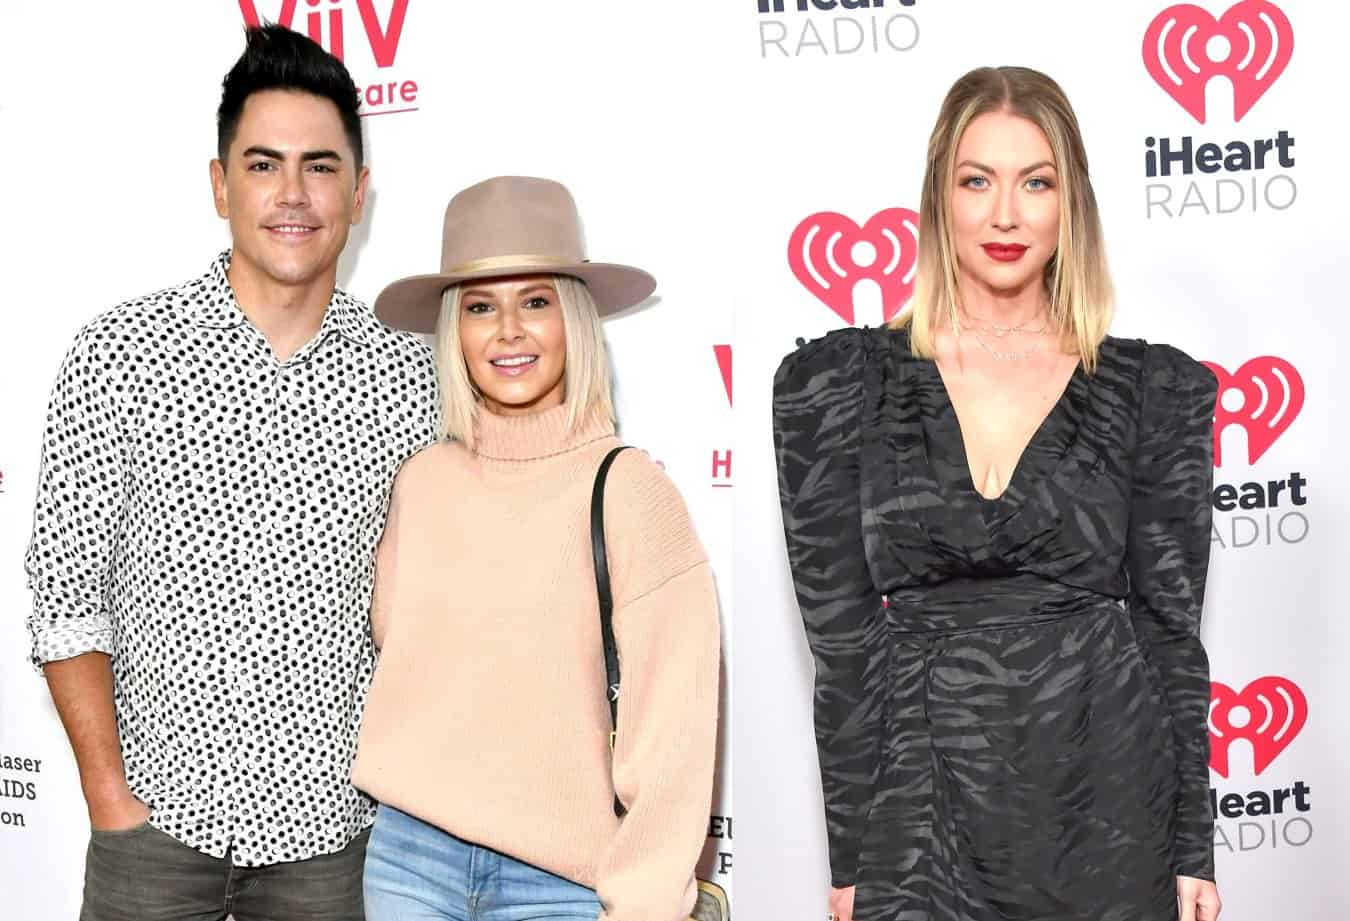 Vanderpump Rules' Ariana Madix Reacts to Tom Sandoval's Rant Against Stassi Schroeder, Plus She Offers an Update on Her New House and Reveals If She's Living Off TomTom